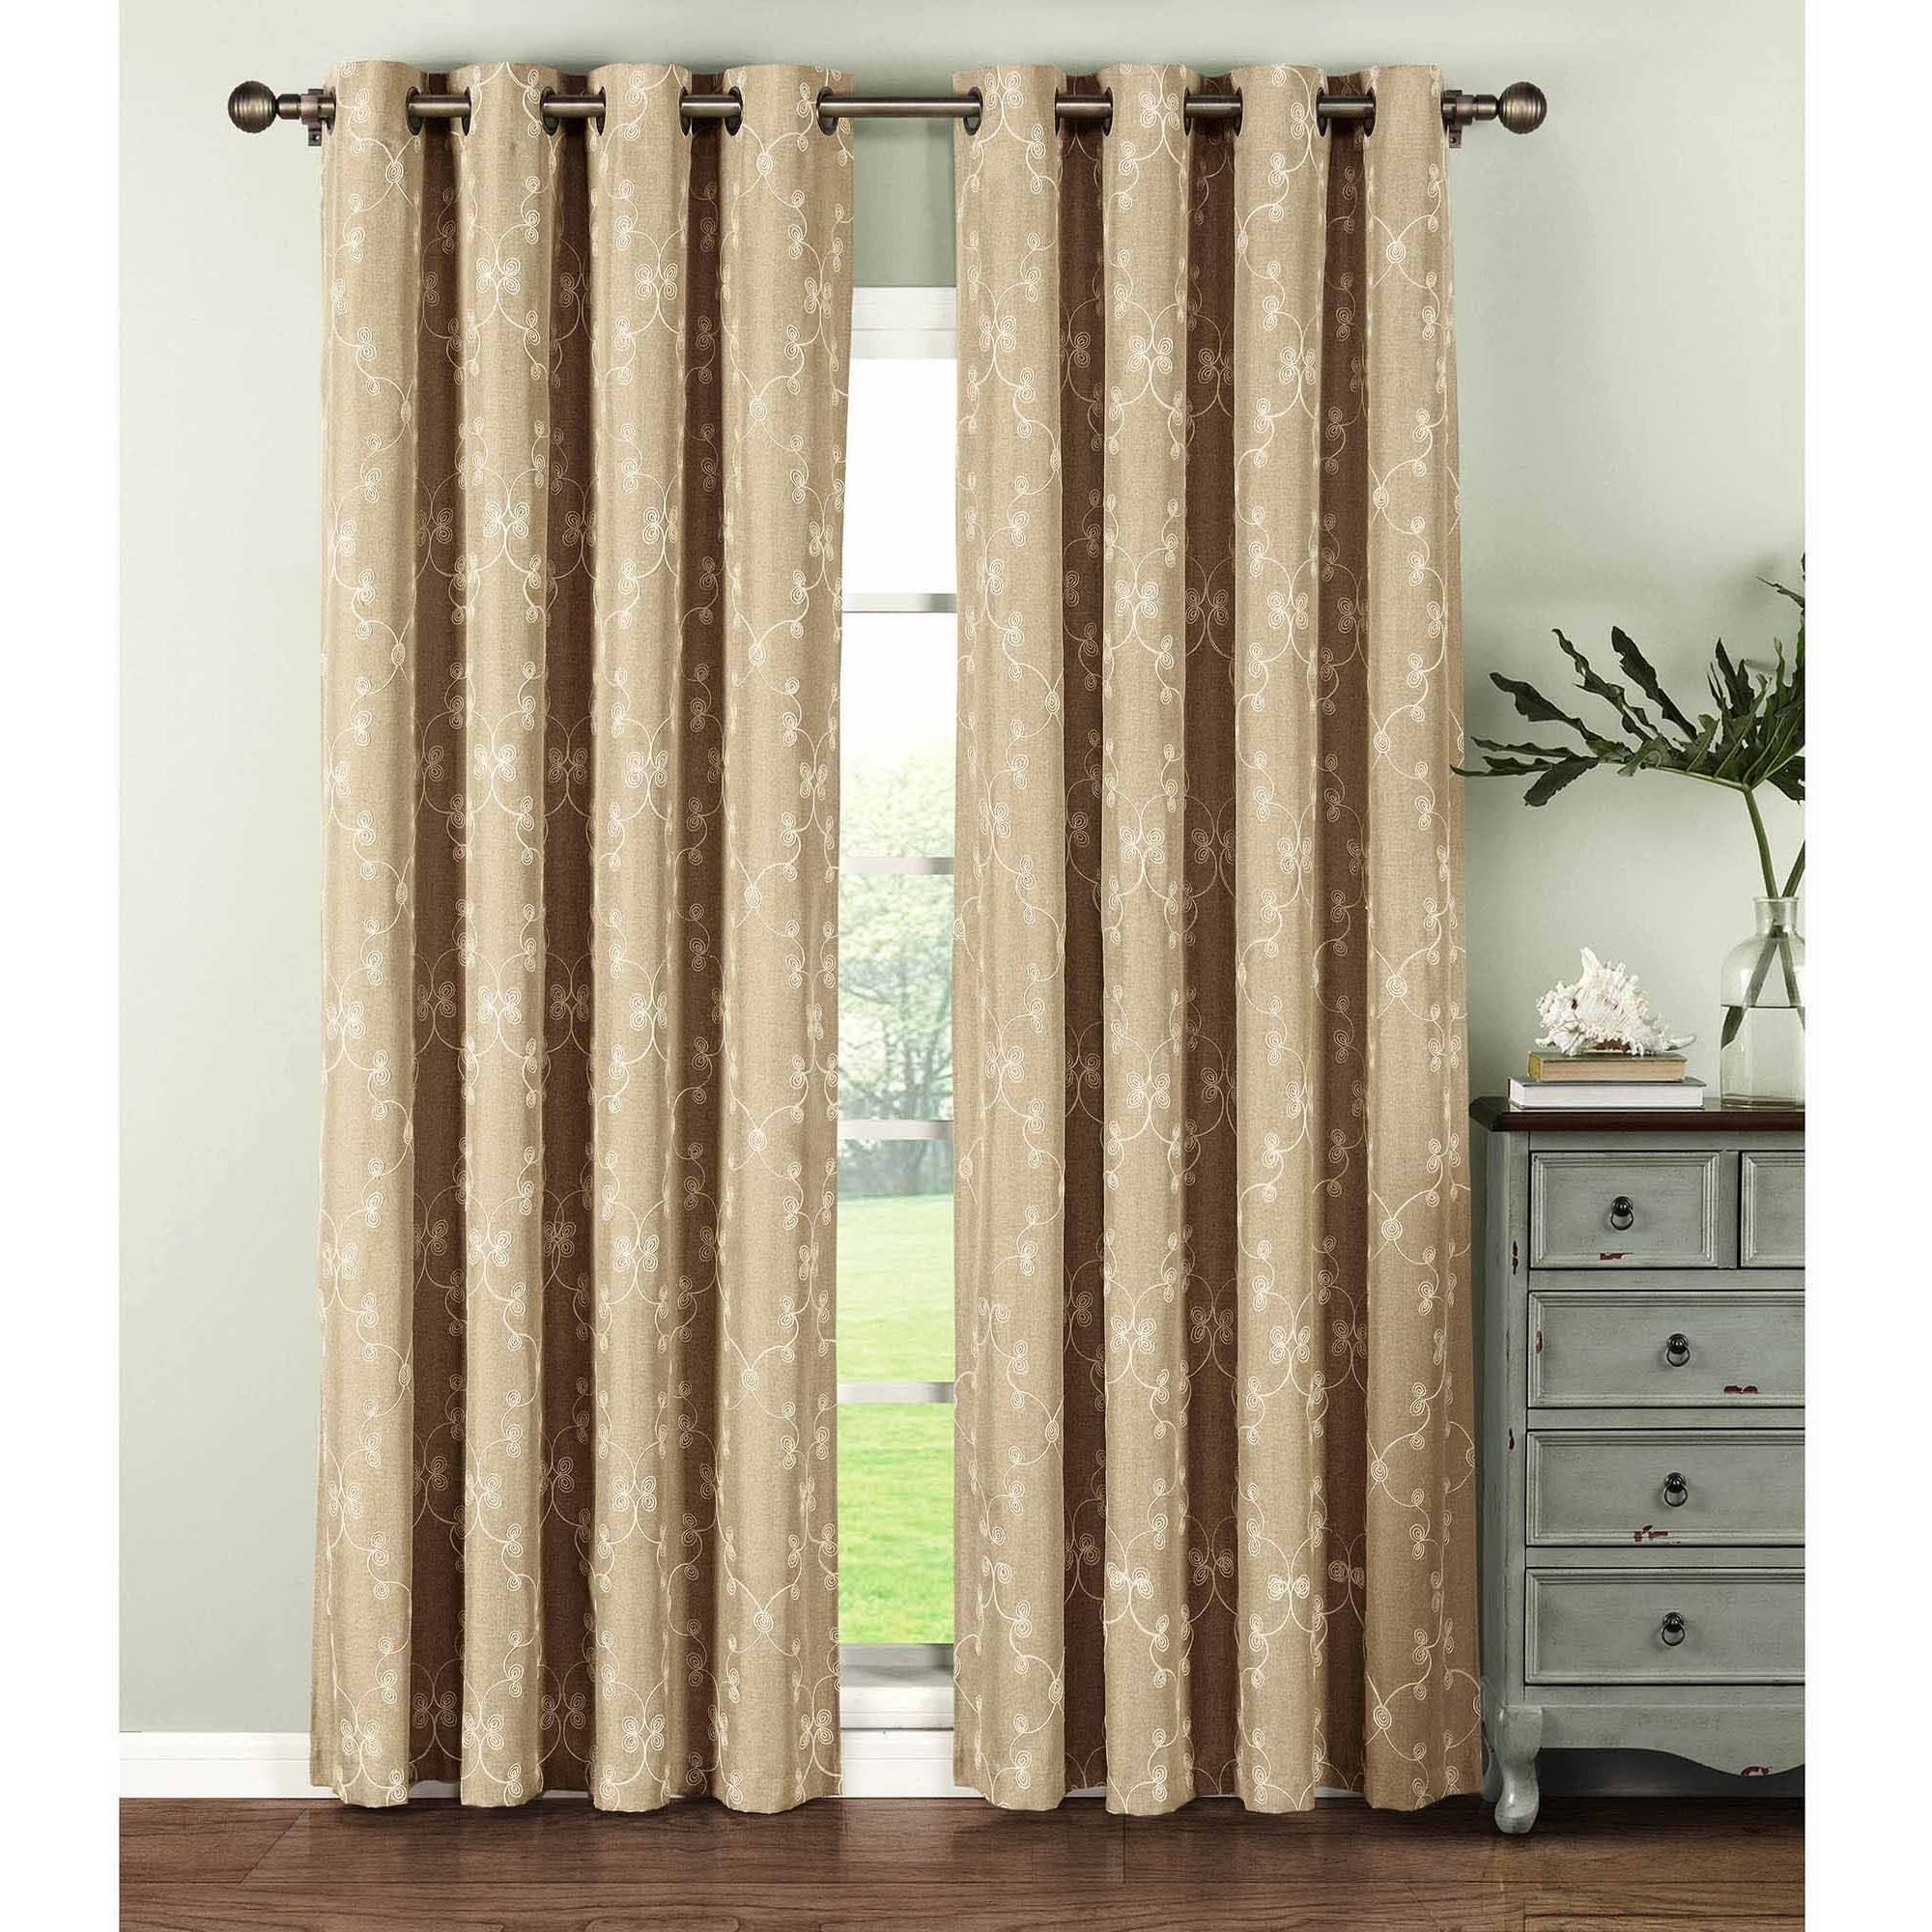 Geo Gate Embroidered Faux Linen Extra Wide Grommet Curtain Panel Pairs Intended For Curtain Panel Pairs (View 9 of 20)